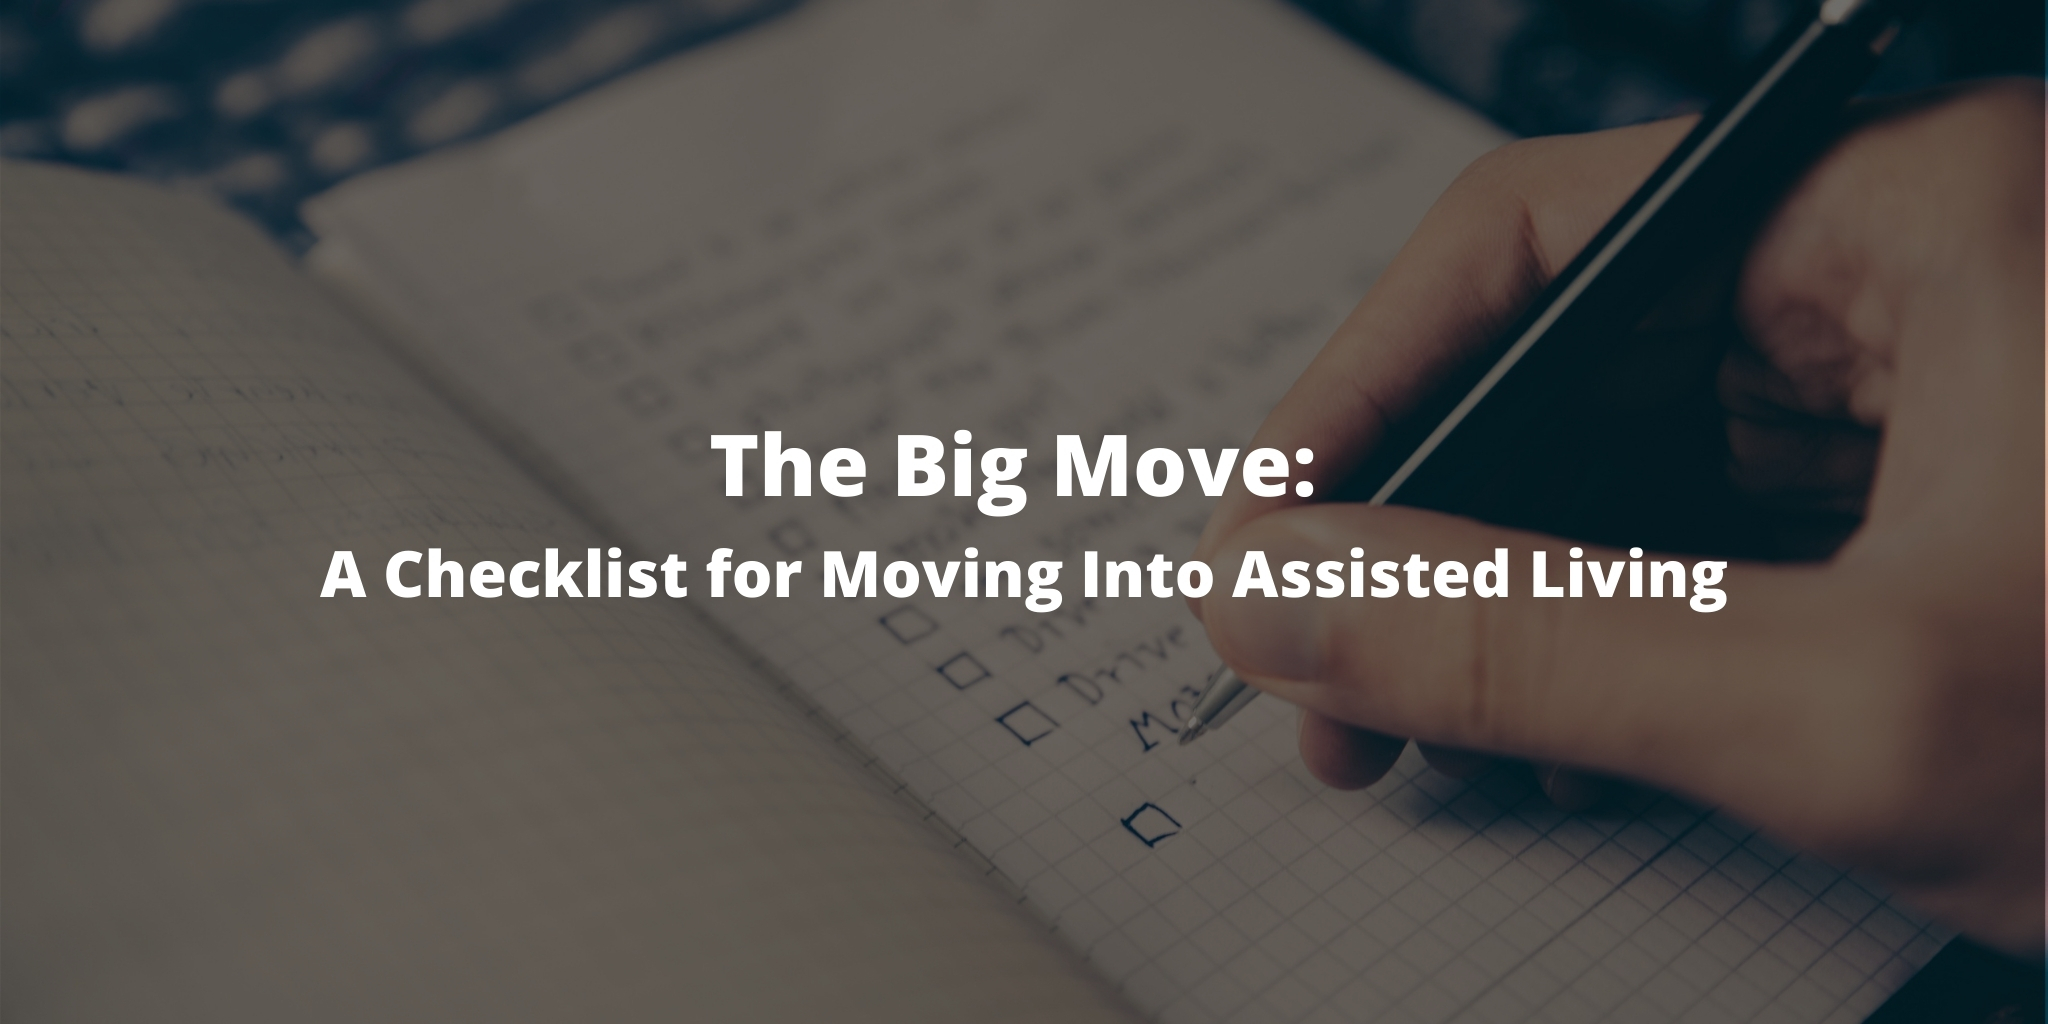 The Big Move: A Checklist for Moving Into Assisted Living